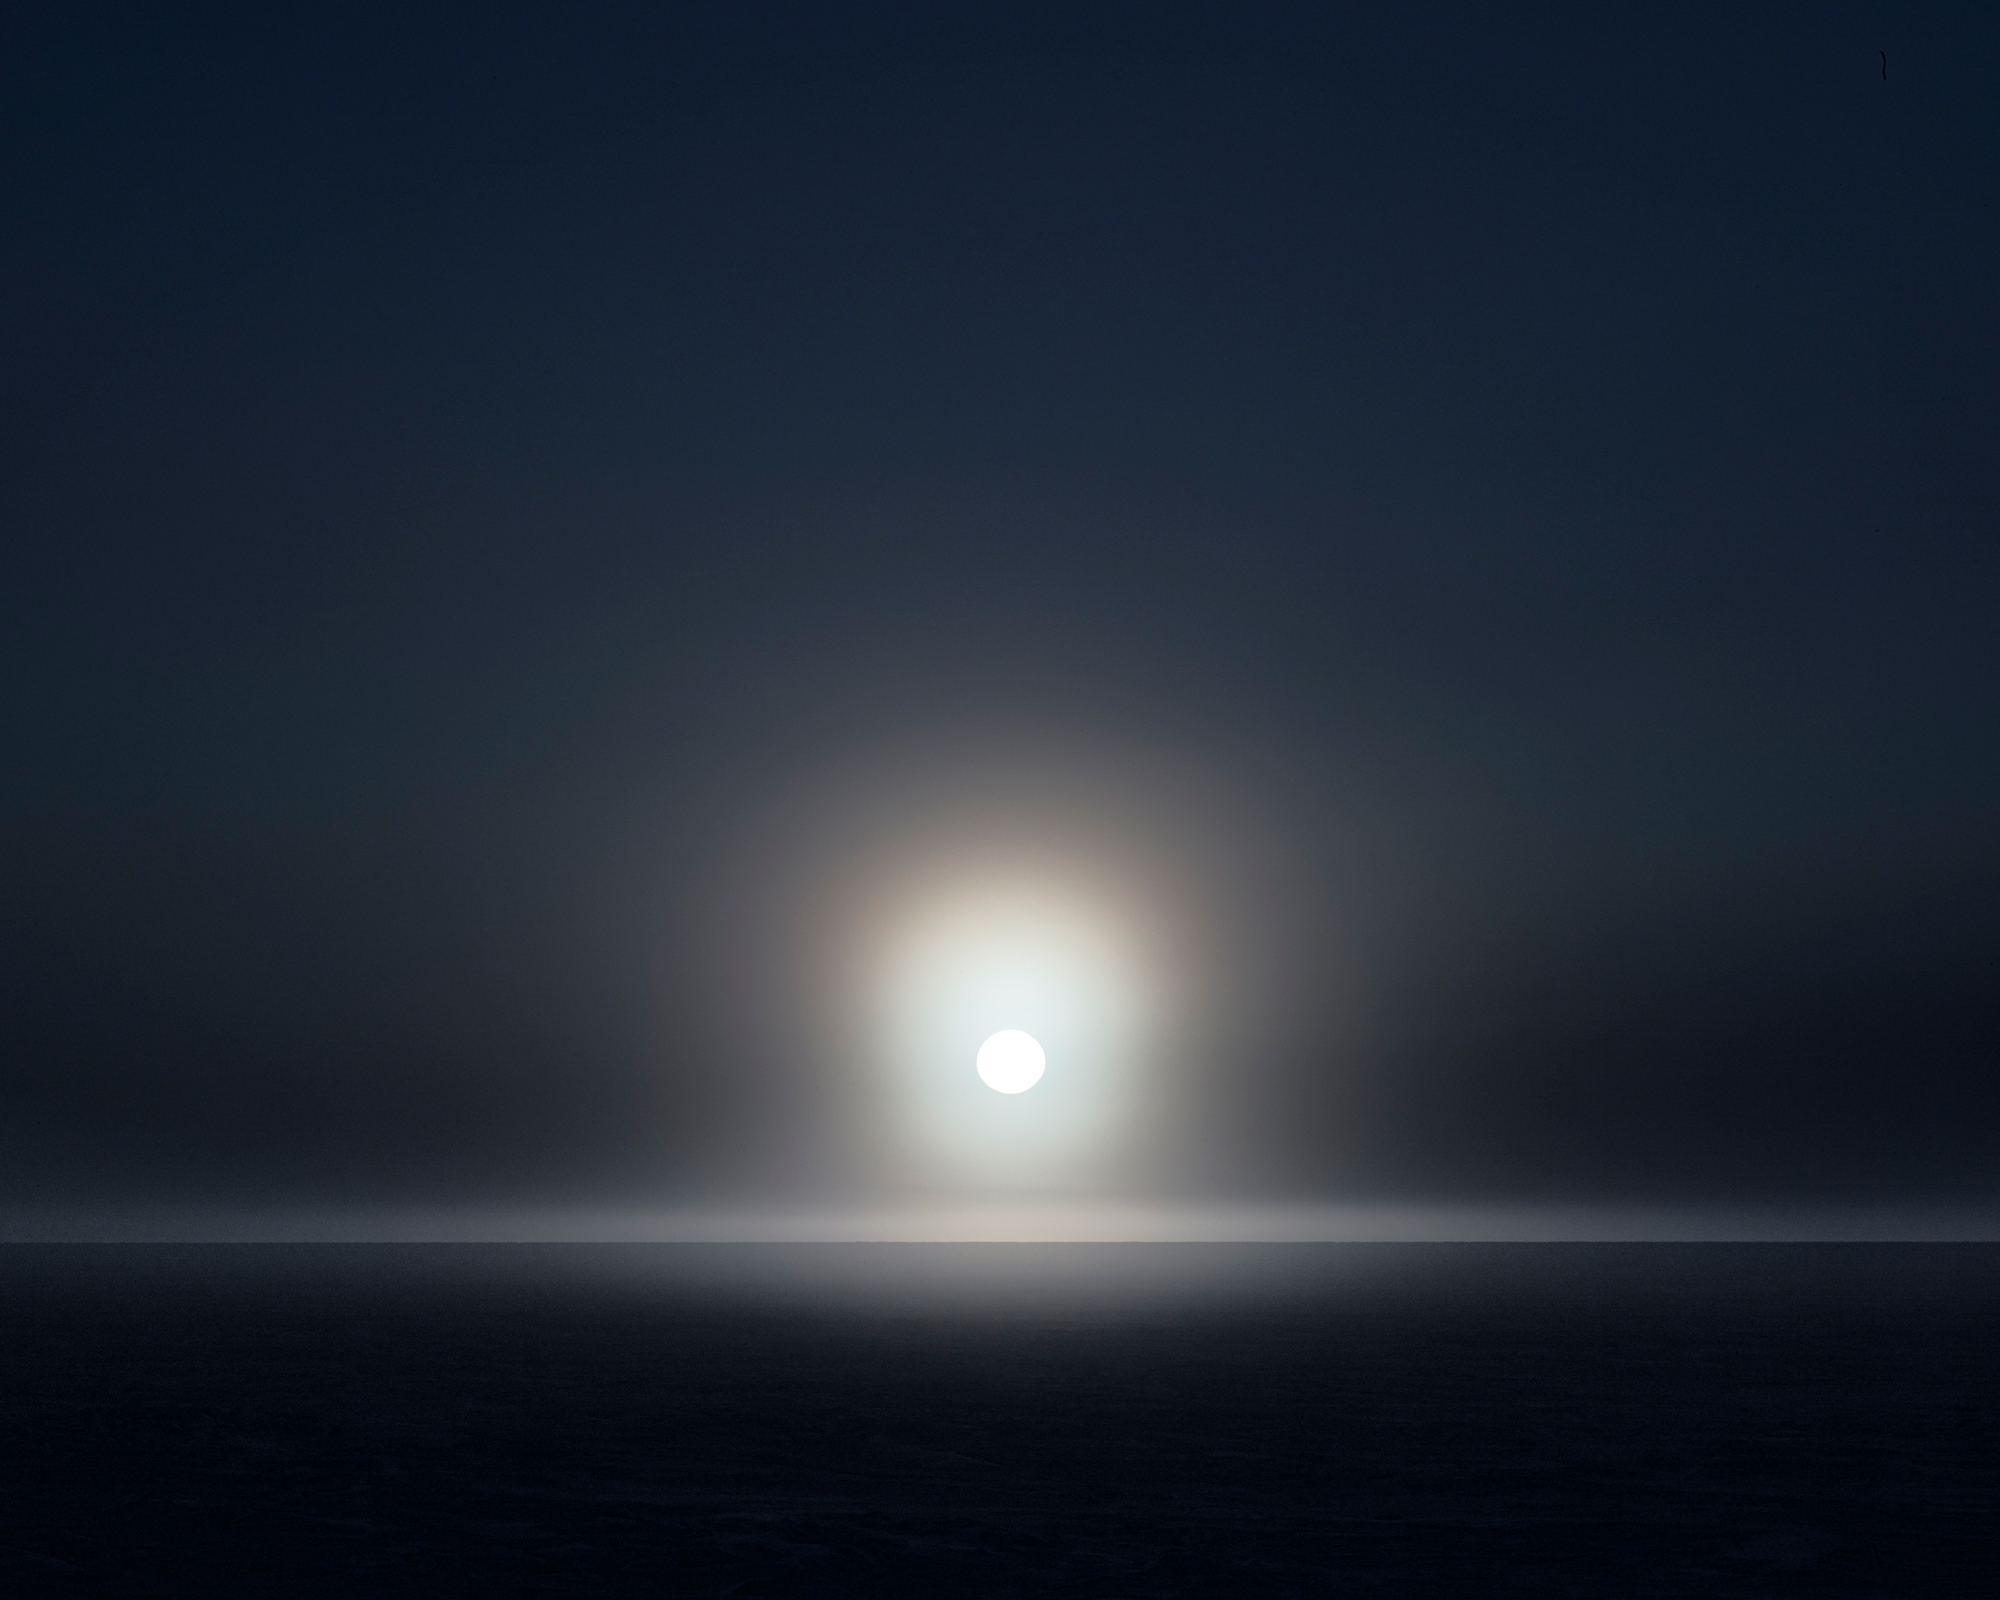 Icesheet #0712, late sun and fog, 120cm x 198cm, Digital Pigment Print, Edition of 7, 2013